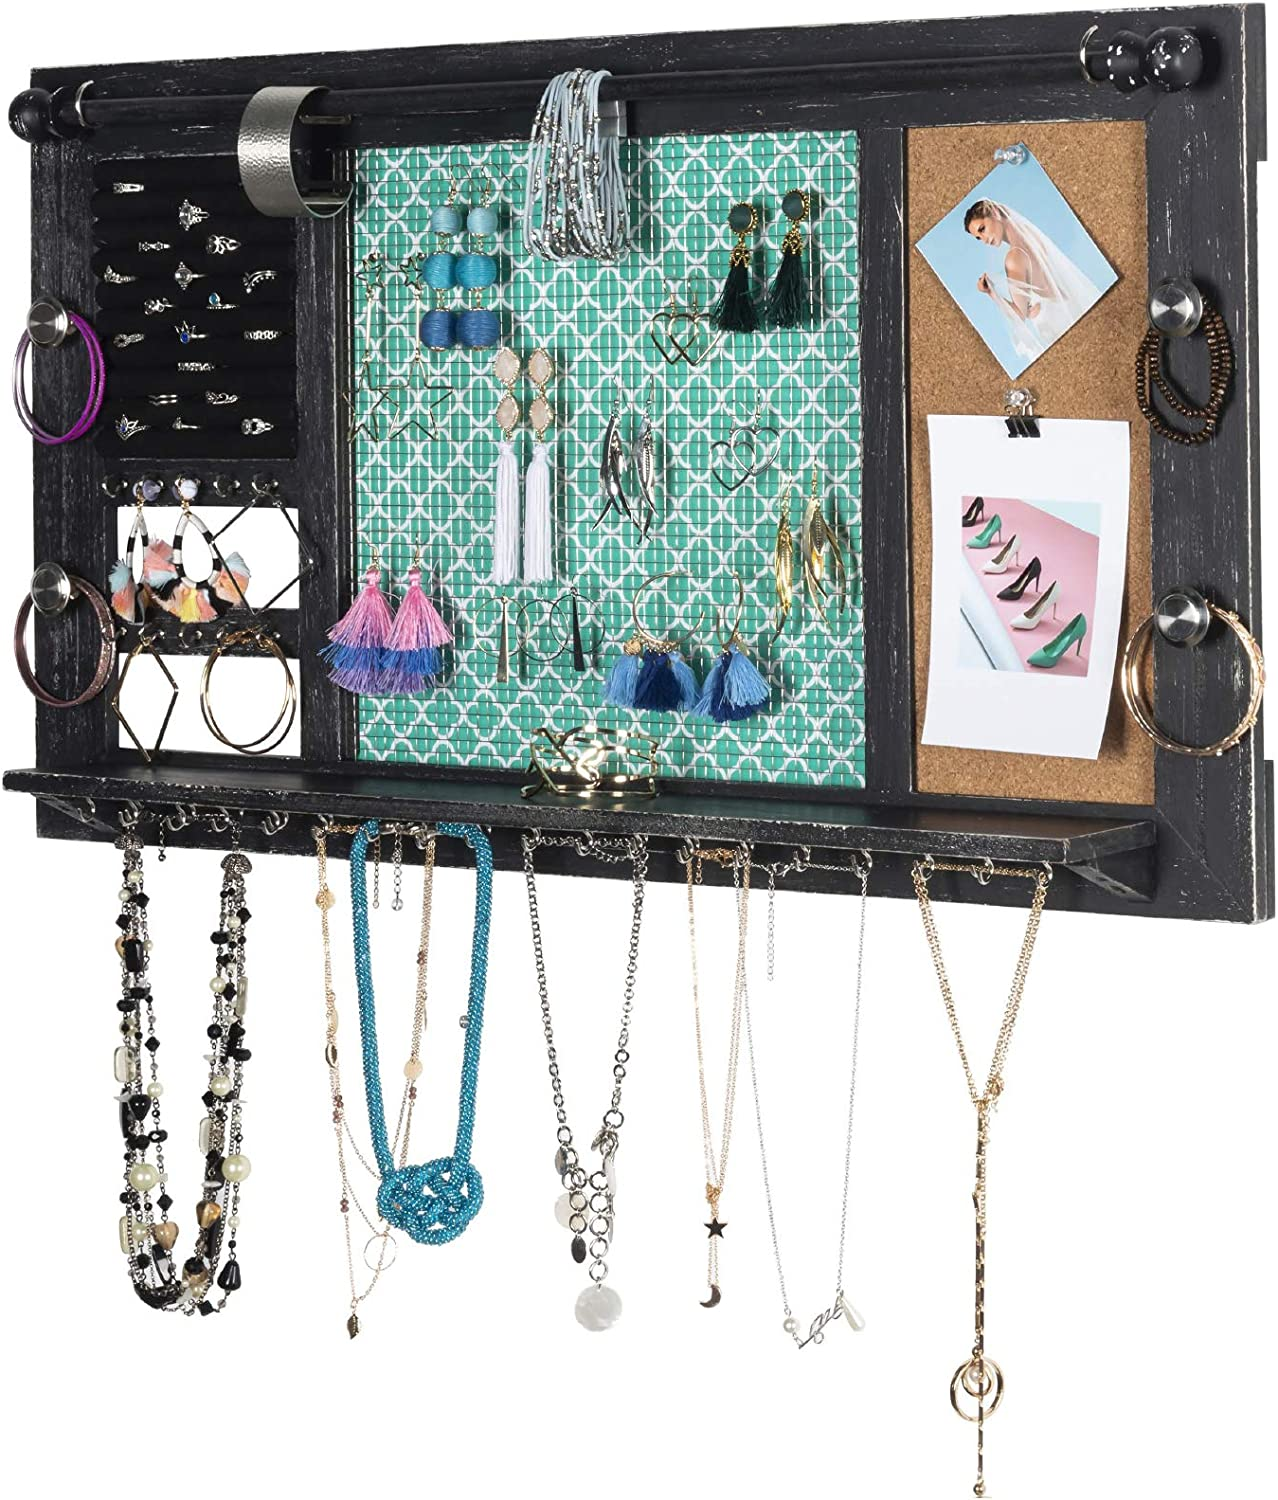 "Large Rustic Wall Mounted Jewelry Organizer: 28""x16"" Shabby Chic Jewelry Box Alternative Hanging Jewelry Organizer for Earings Necklaces Bracelets Accessories Bangles and Ring Holder (Black)"